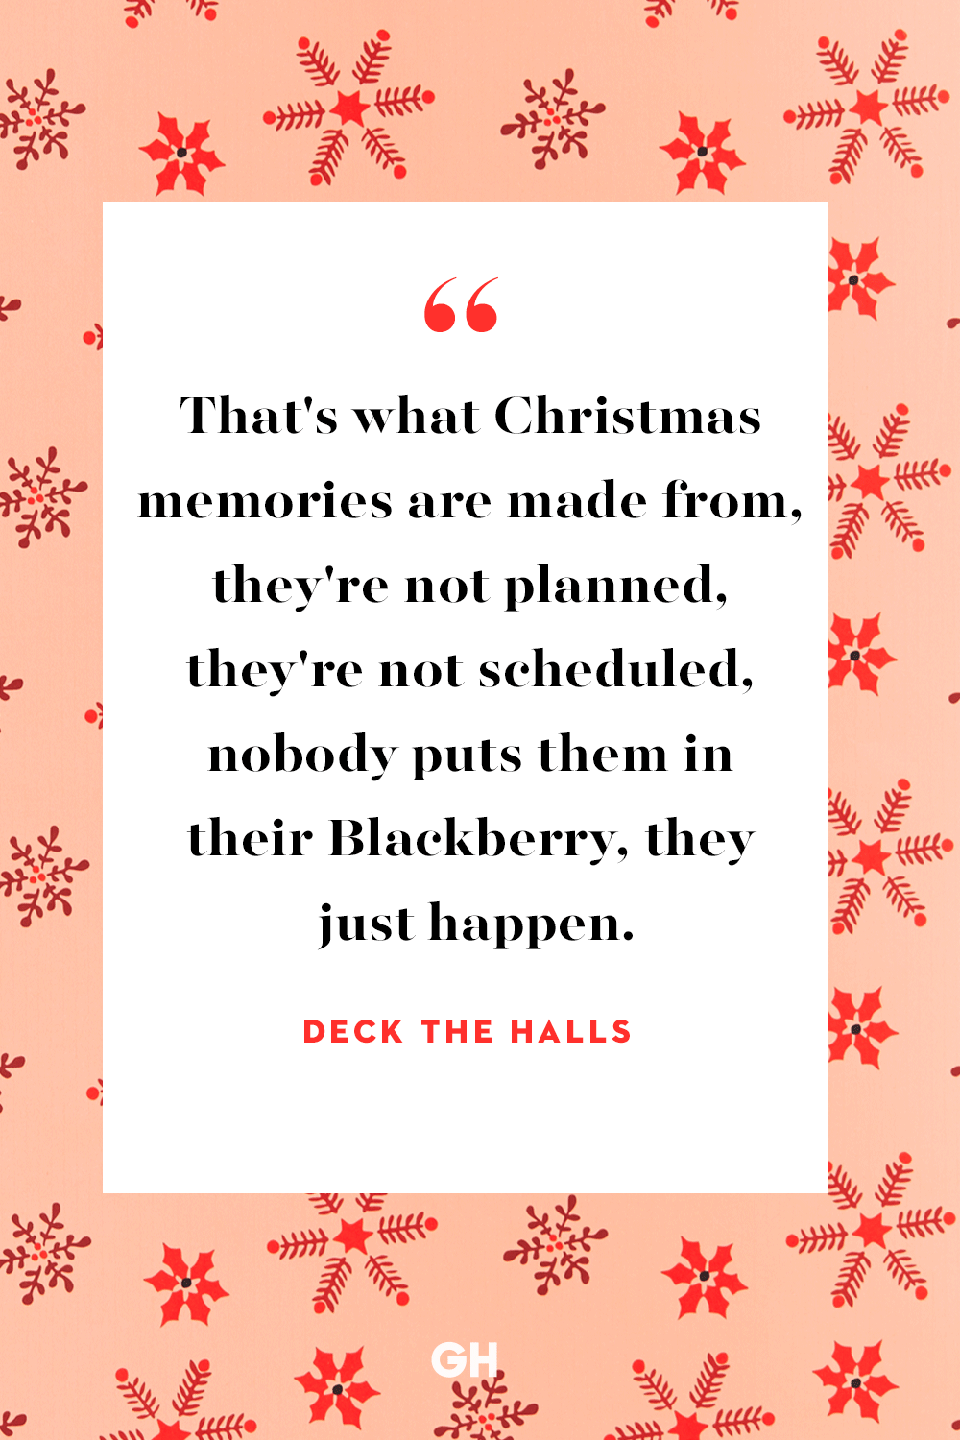 <p>That's what Christmas memories are made from, they're not planned, they're not scheduled, nobody puts them in their Blackberry, they just happen. </p>